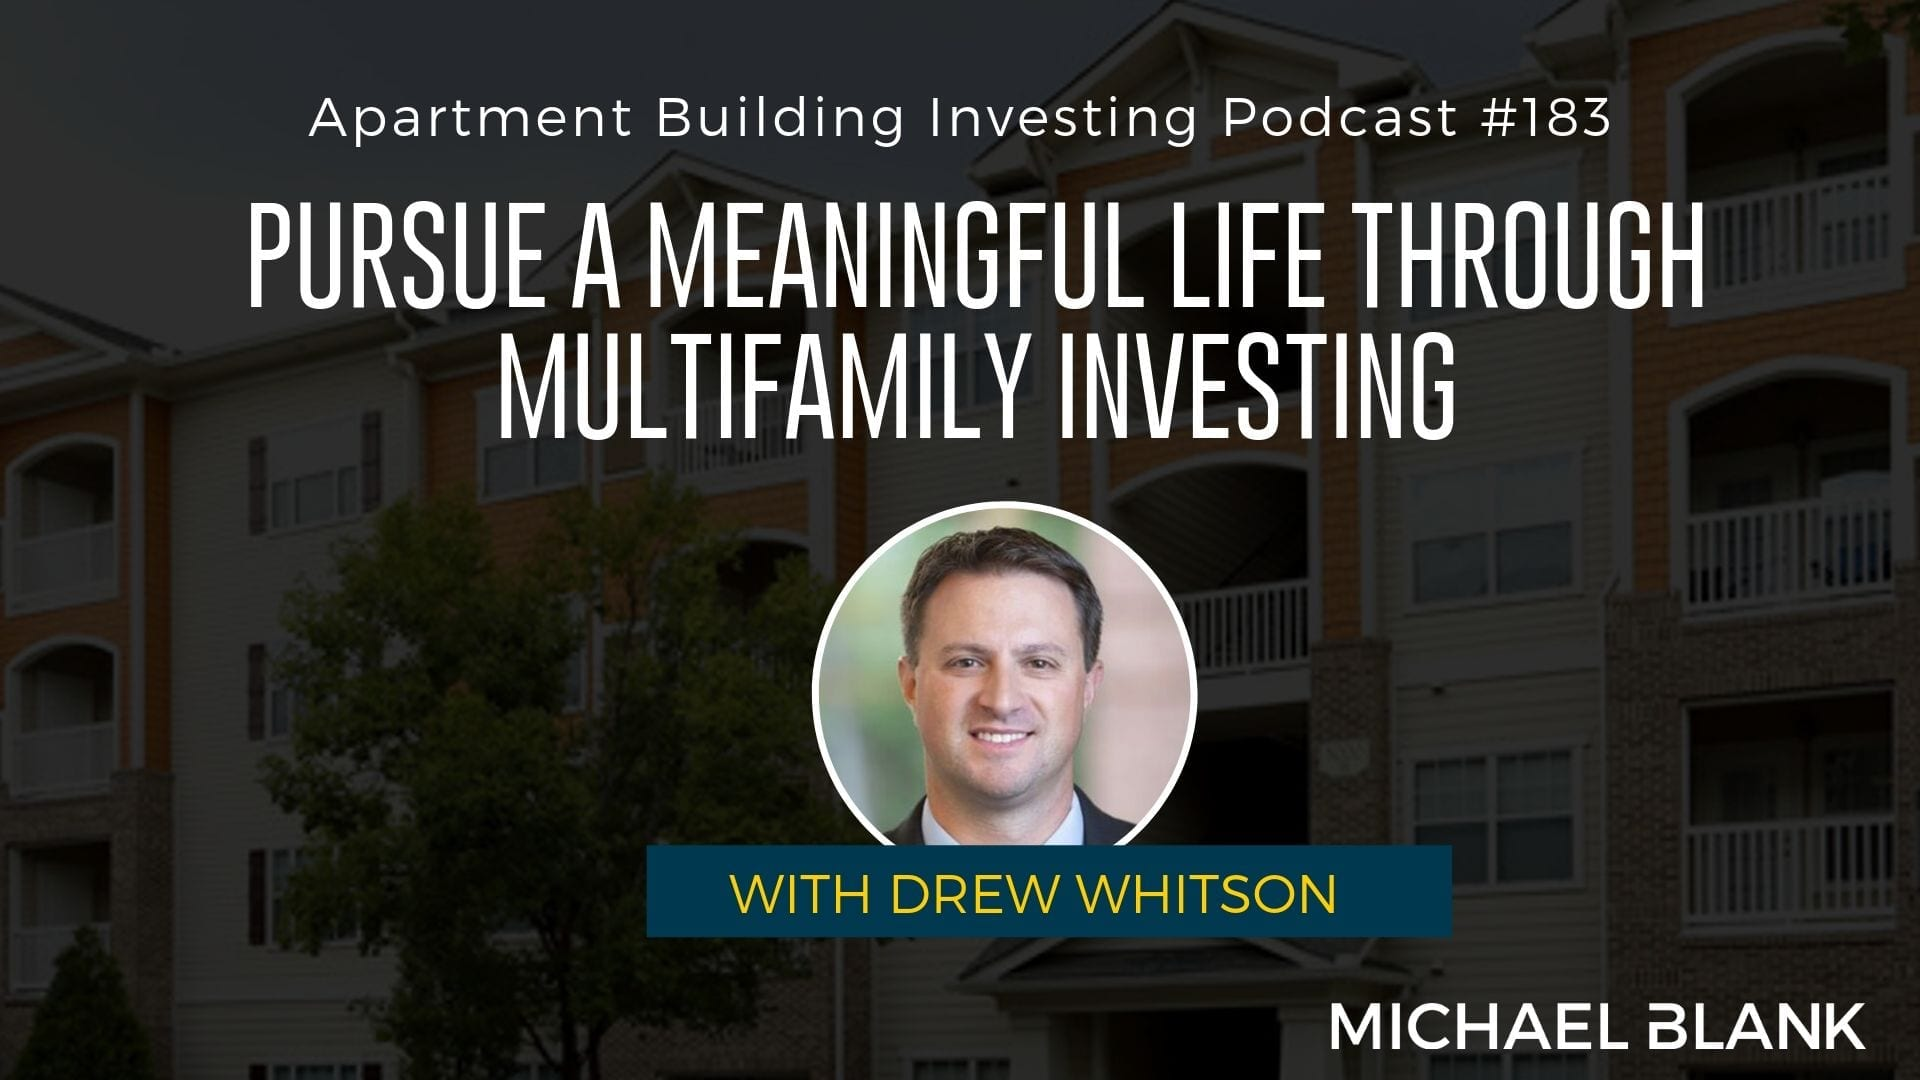 MB 183: Pursue a Meaningful Life Through Multifamily Investing – With Drew Whitson